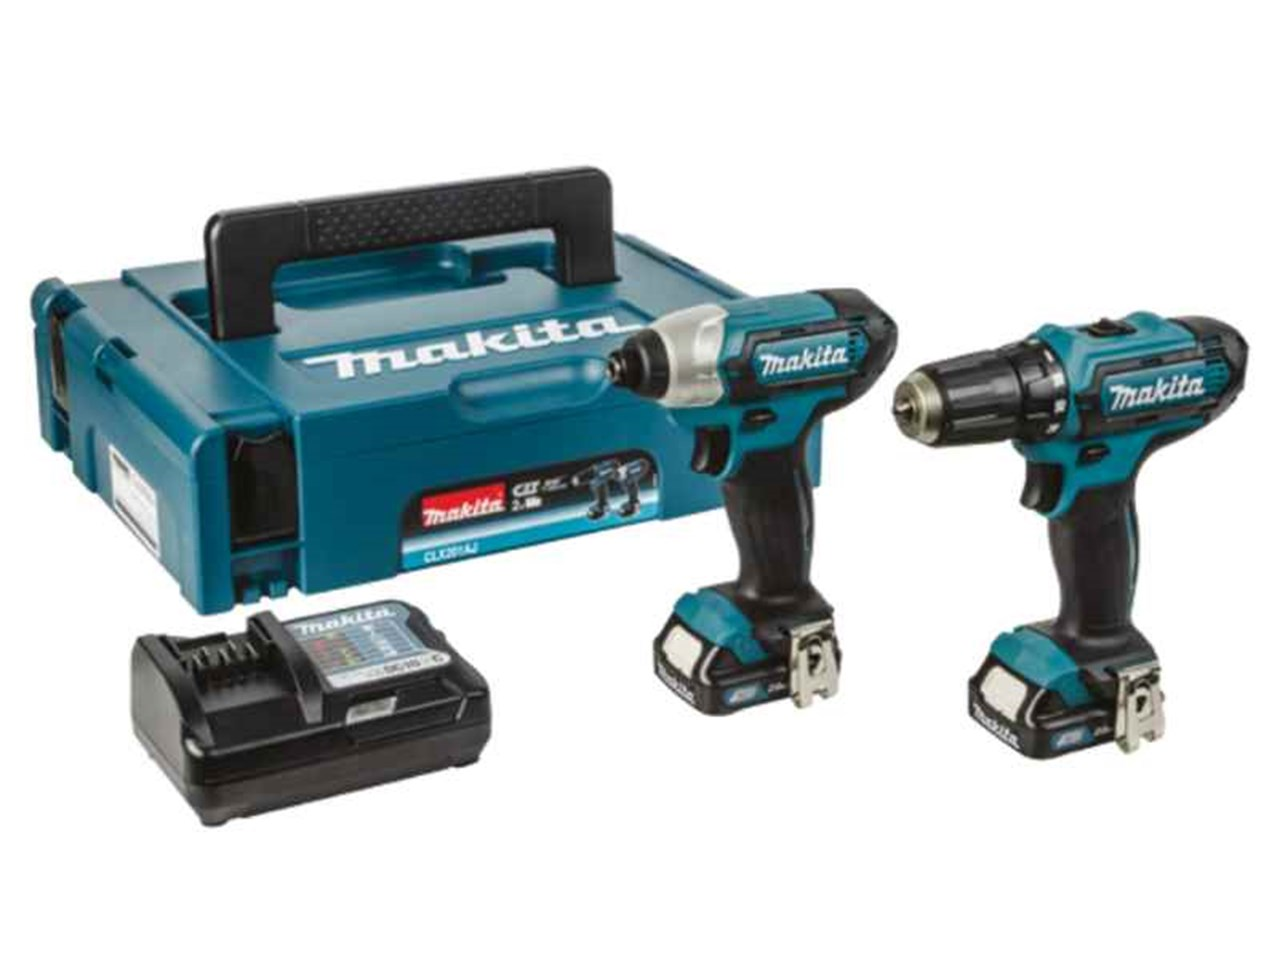 makita clx201aj 10 8v cxt 2x2 0ah li ion drill impact driver kit. Black Bedroom Furniture Sets. Home Design Ideas